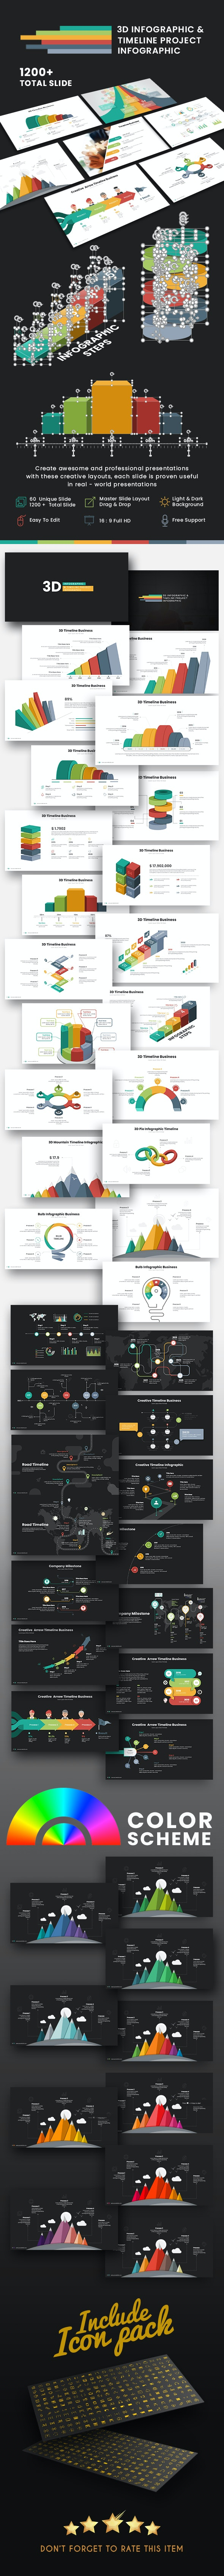 3D Infographic & Timeline Presentation Template - Creative PowerPoint Templates